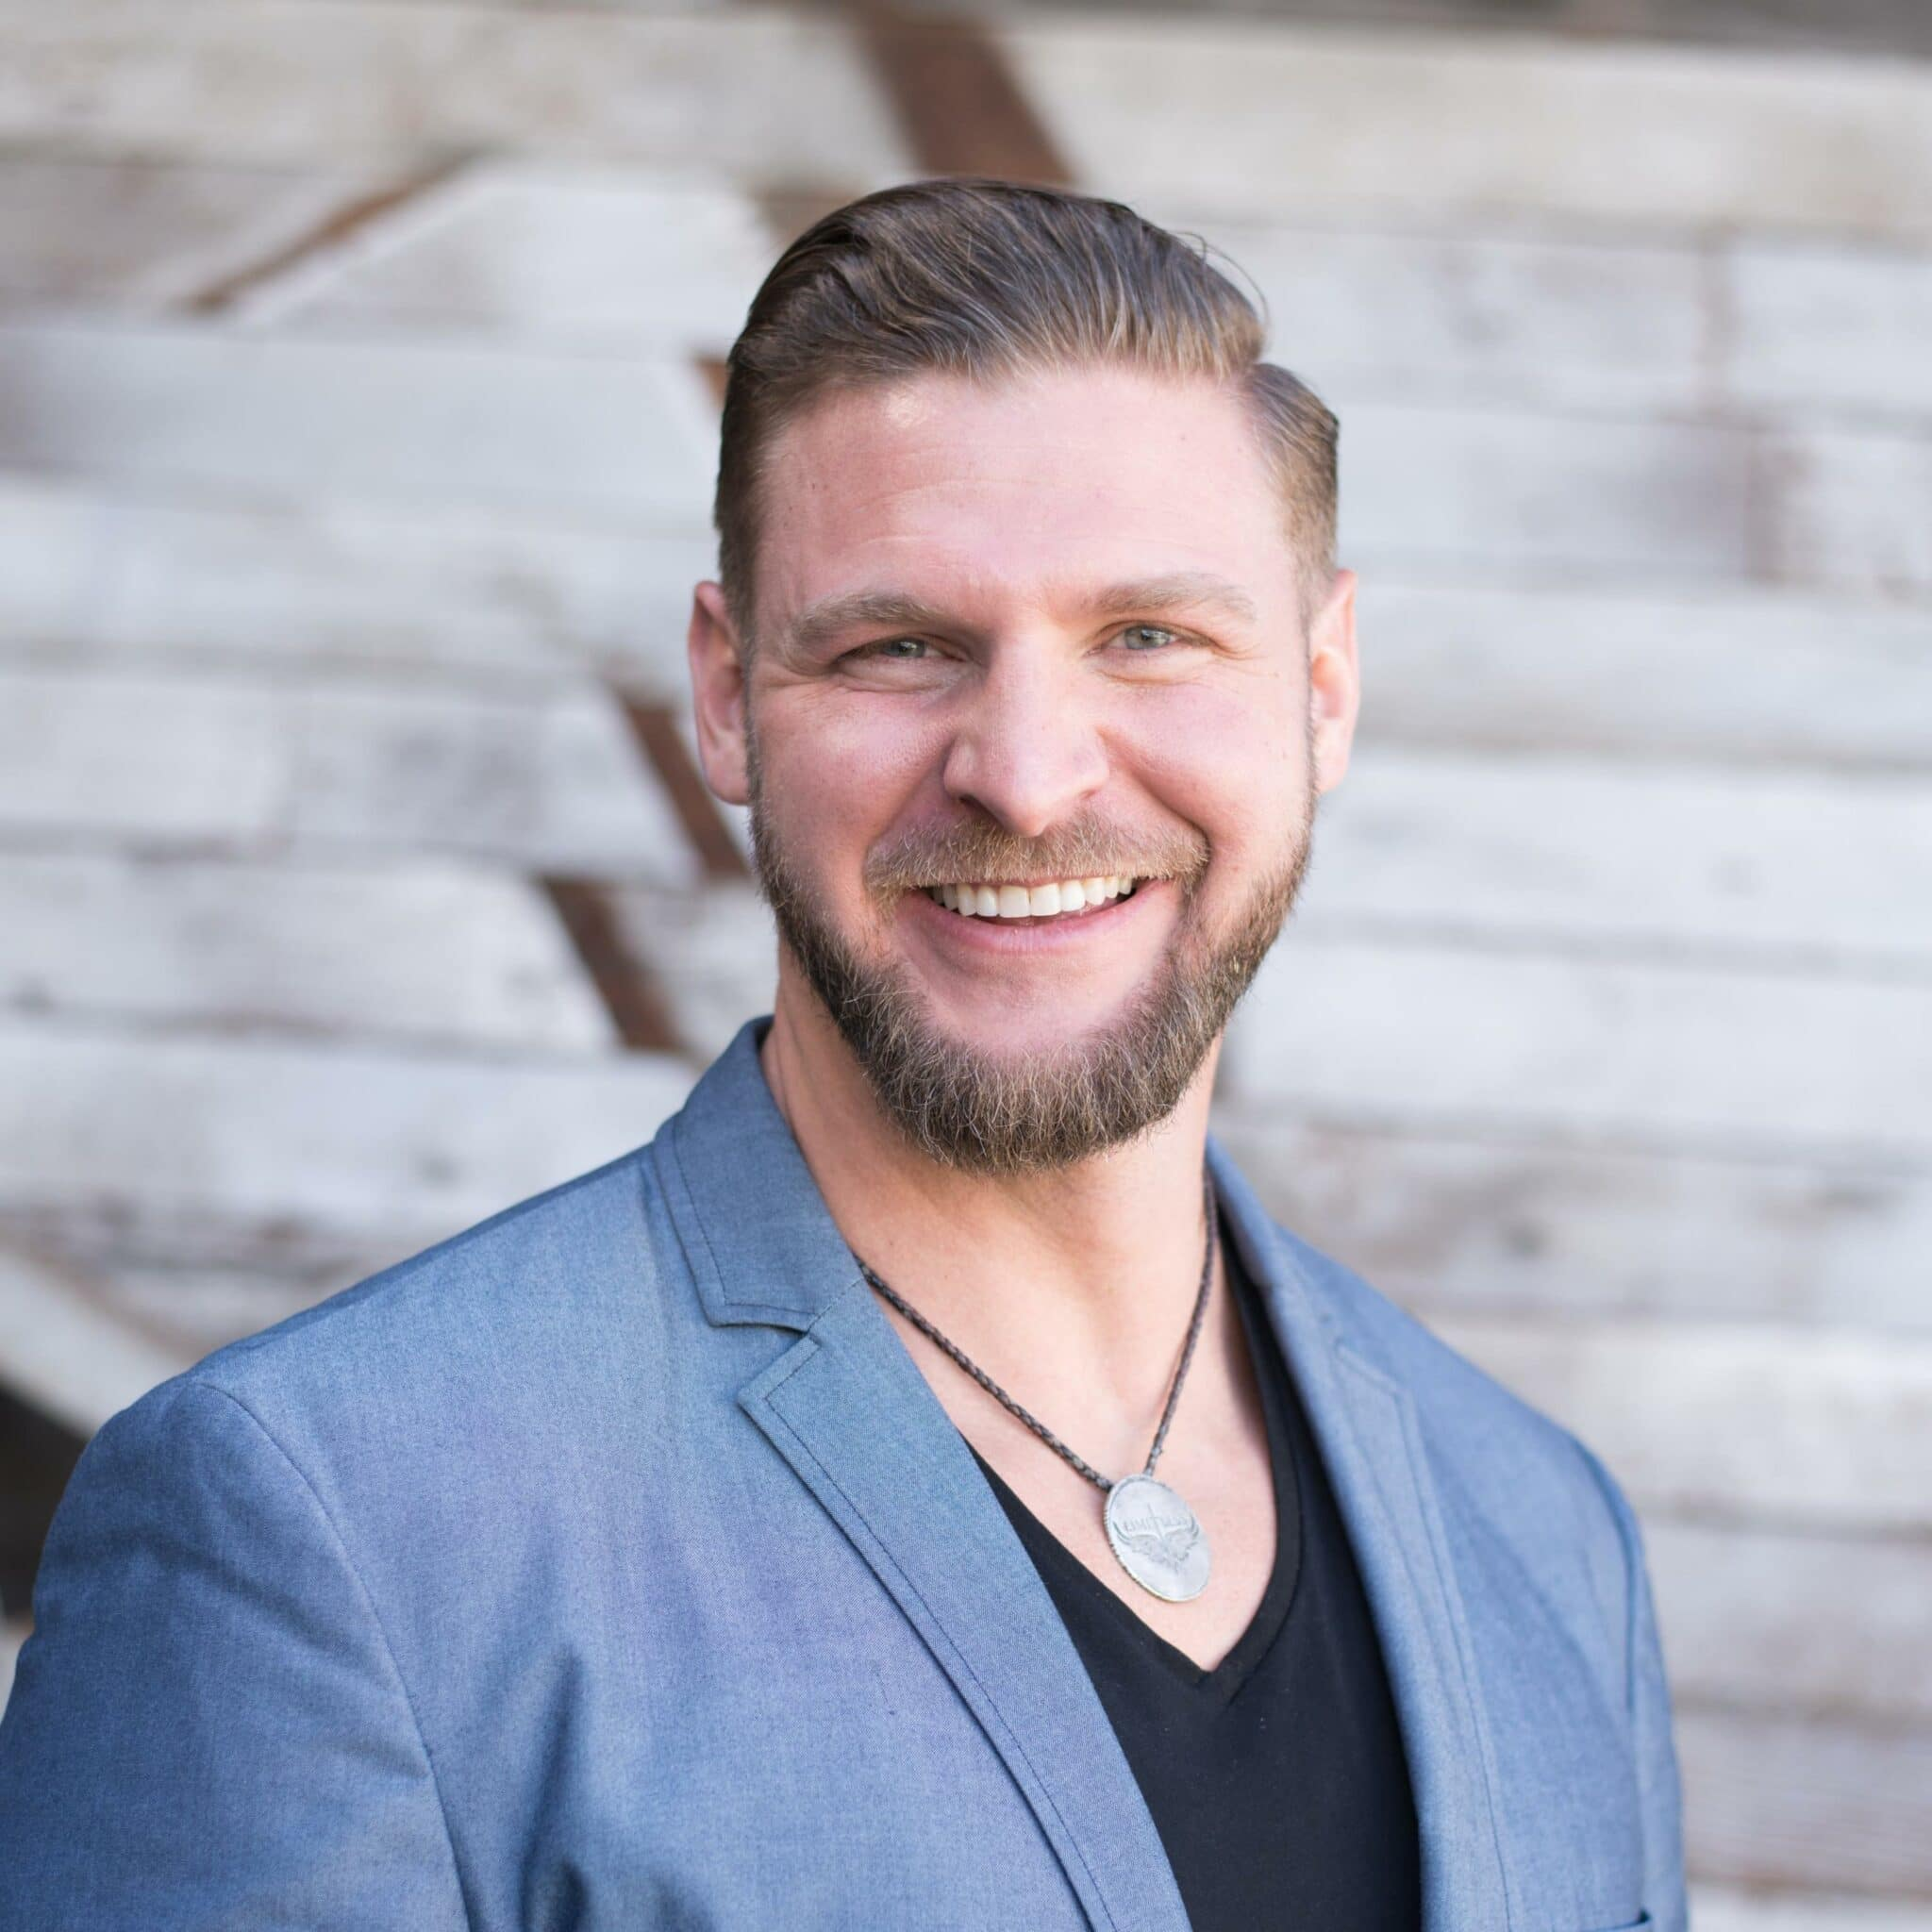 The 41-year old son of father (?) and mother(?) Kris Krohn in 2021 photo. Kris Krohn earned a  million dollar salary - leaving the net worth at  million in 2021